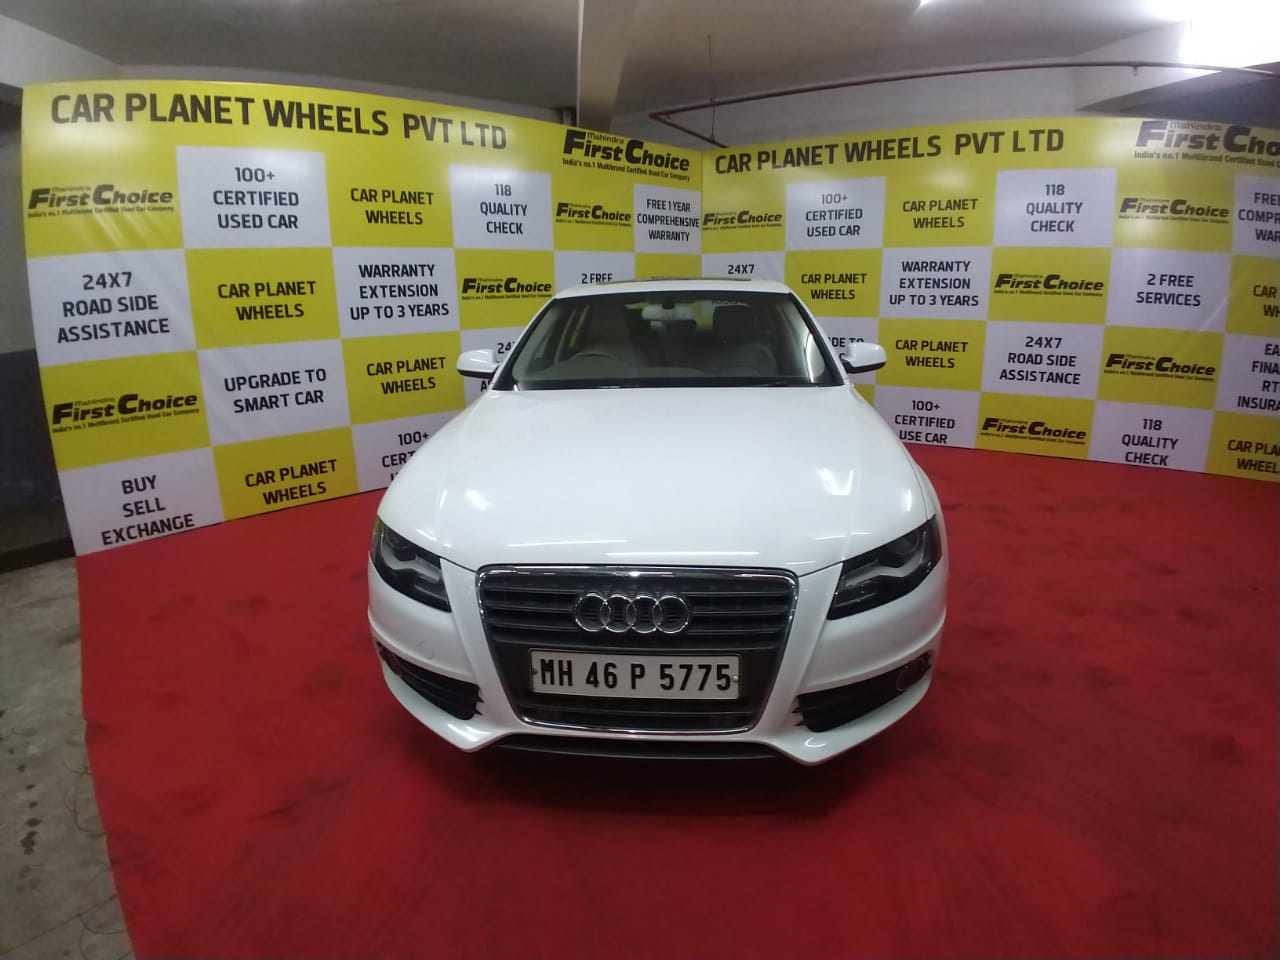 Used Audi Cars Second Hand Cars In Thane Mahindra First Choice - Audi car second hand